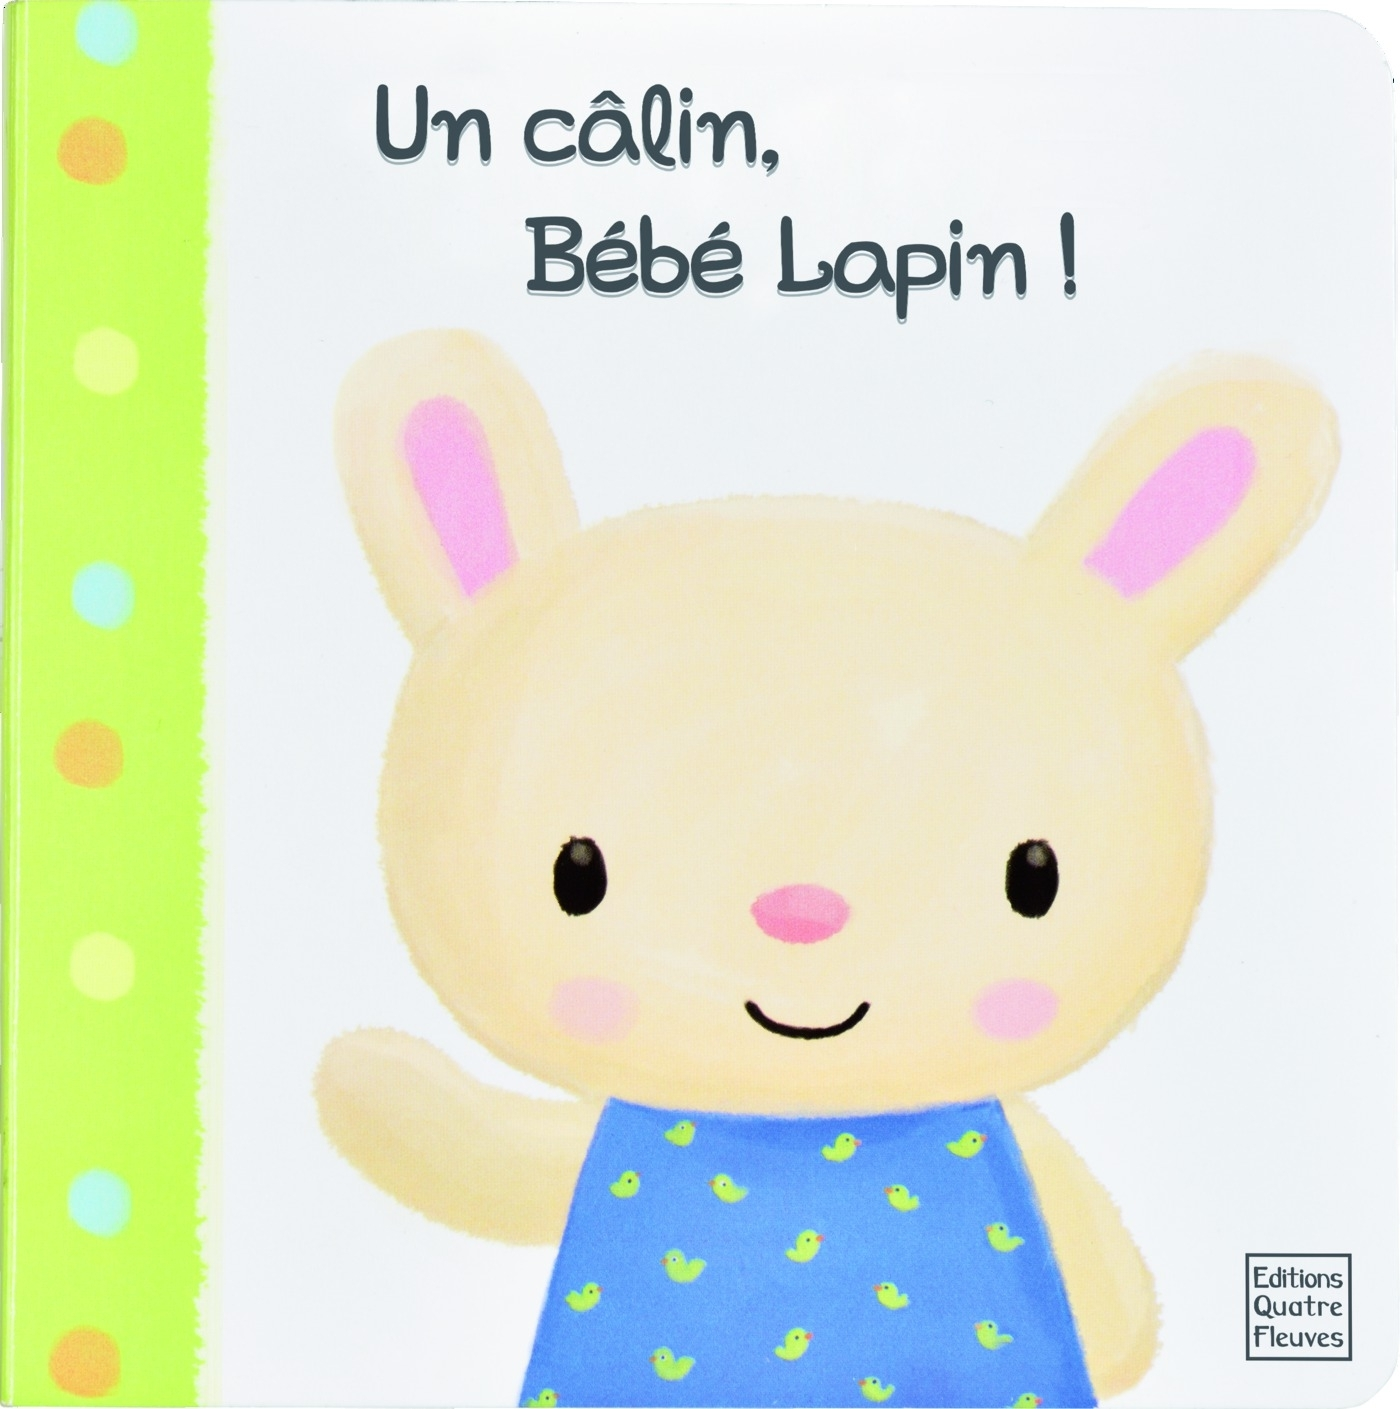 UN CALIN, BEBE LAPIN !